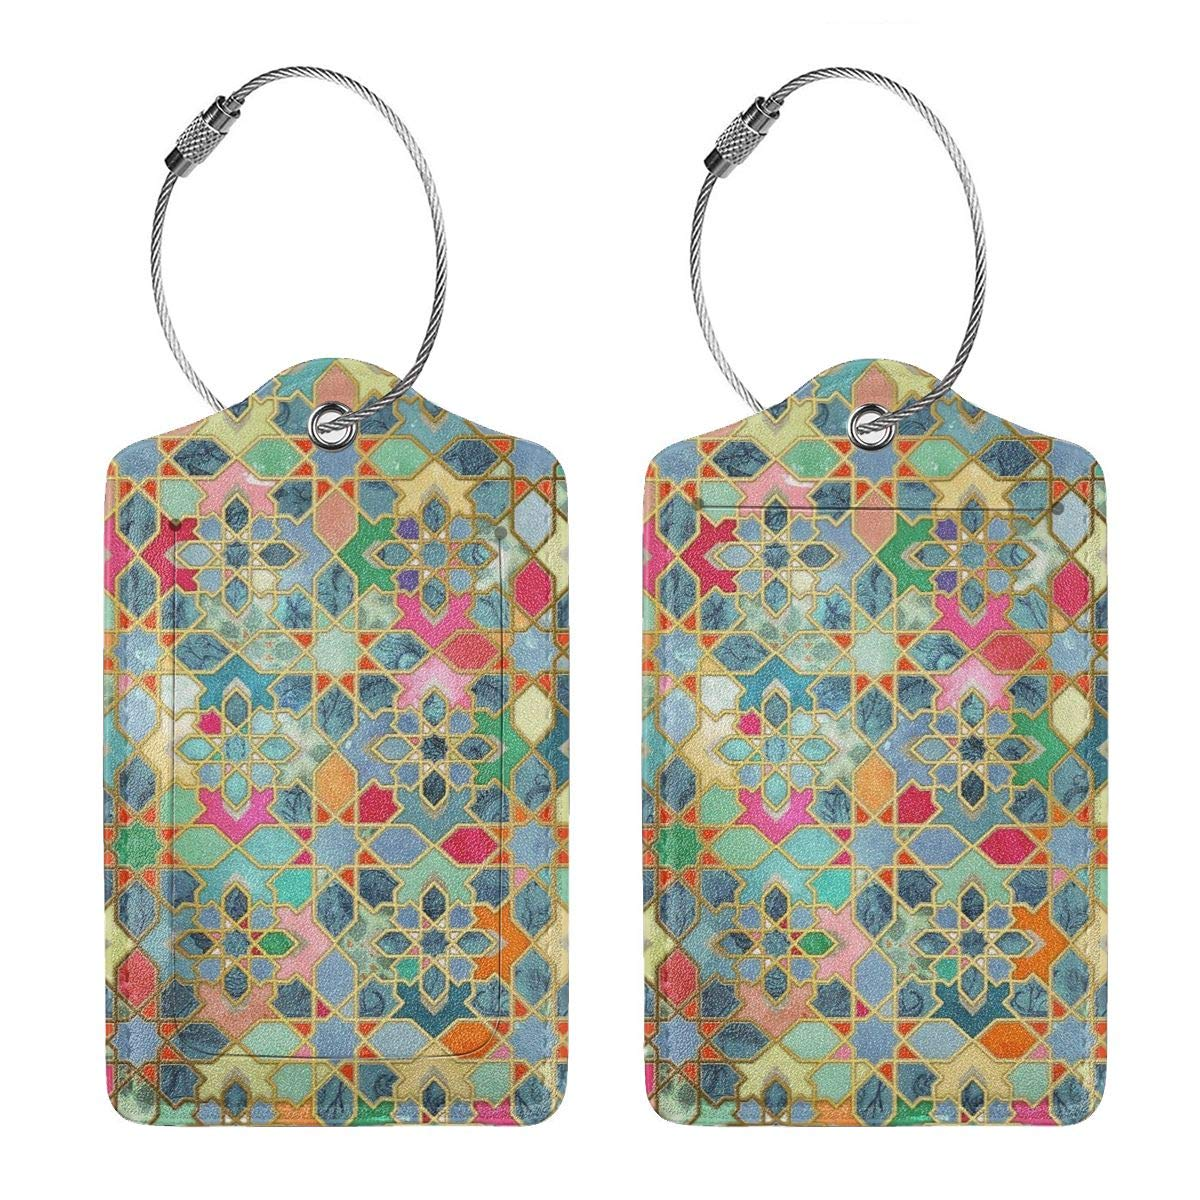 Godzigod Travel Luggage Tags PU Leather Bag Tags Suitcase Baggage Label Handbag Tag with Full Back Privacy Cover Steel Loops Honeycomb Cubes Bohemian Graphics